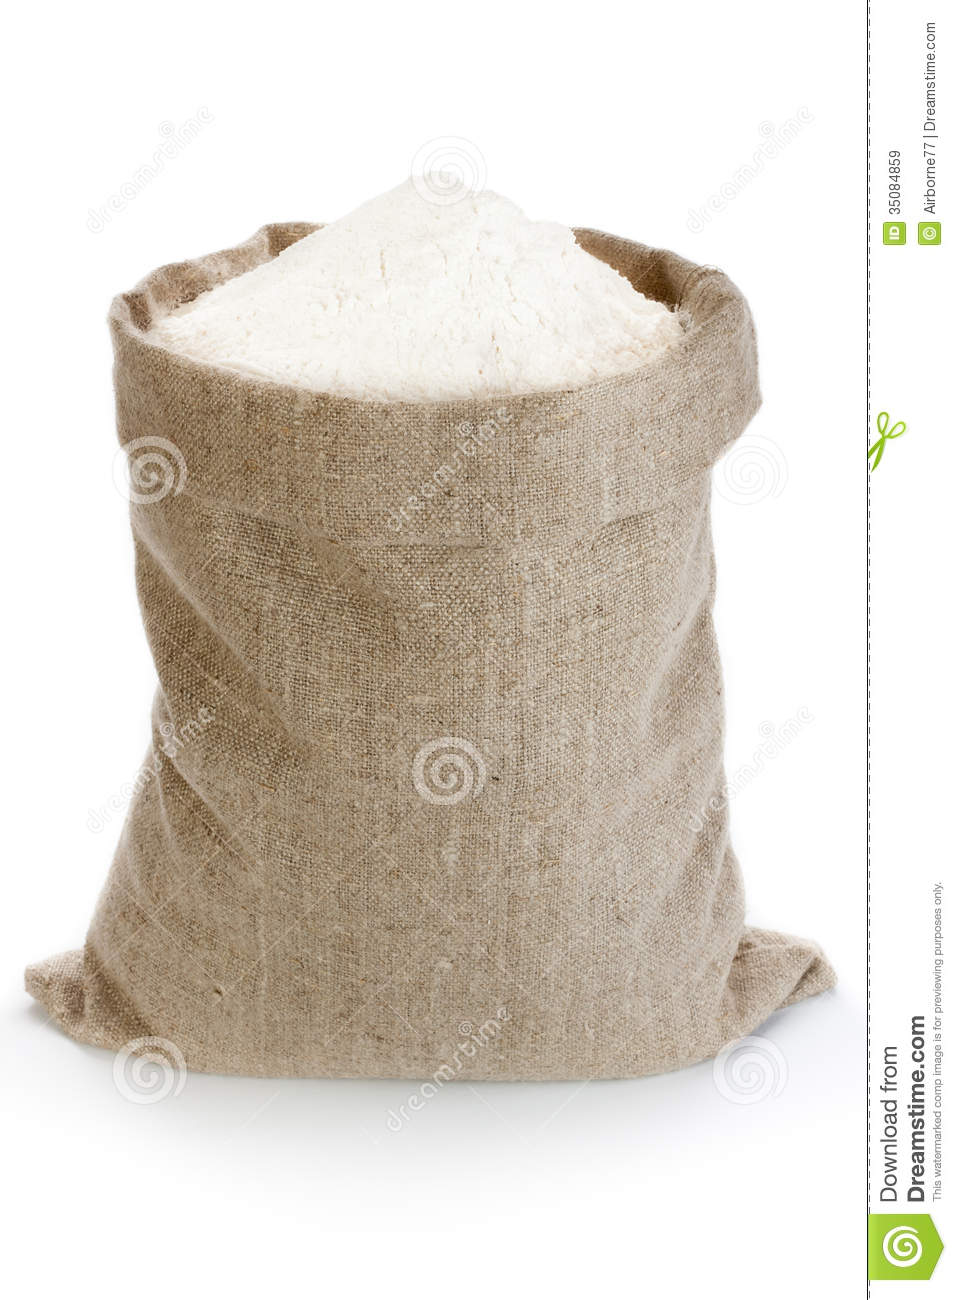 Linen Sack With Flour Royalty Free Stock Images Image